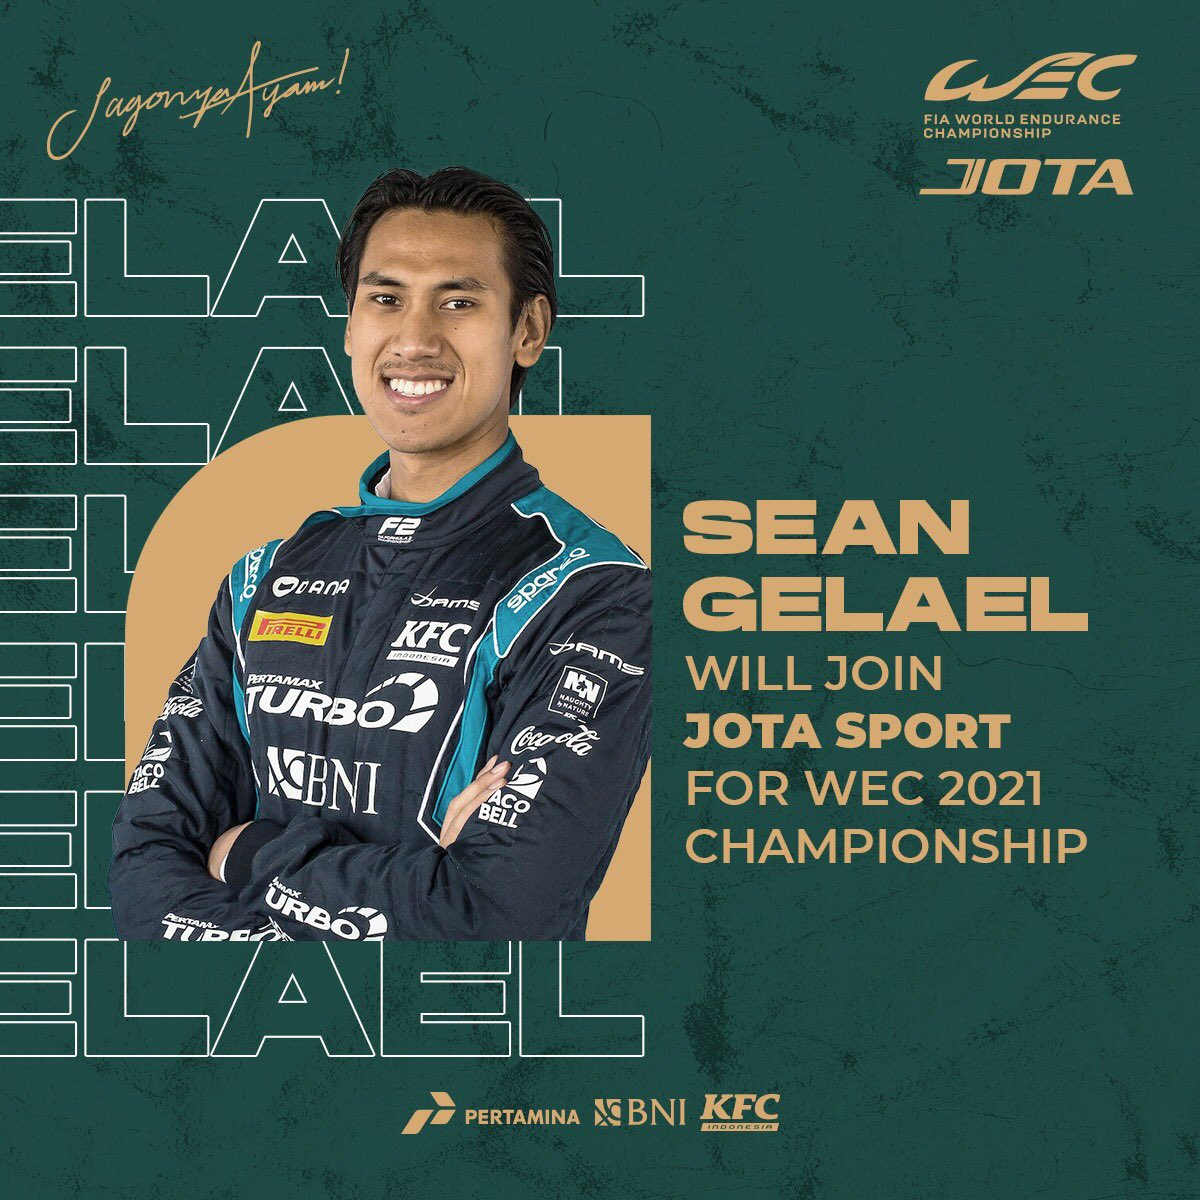 You'll be in great company, @JotaSport!   Best of luck for the coming #WEC season, Sean!